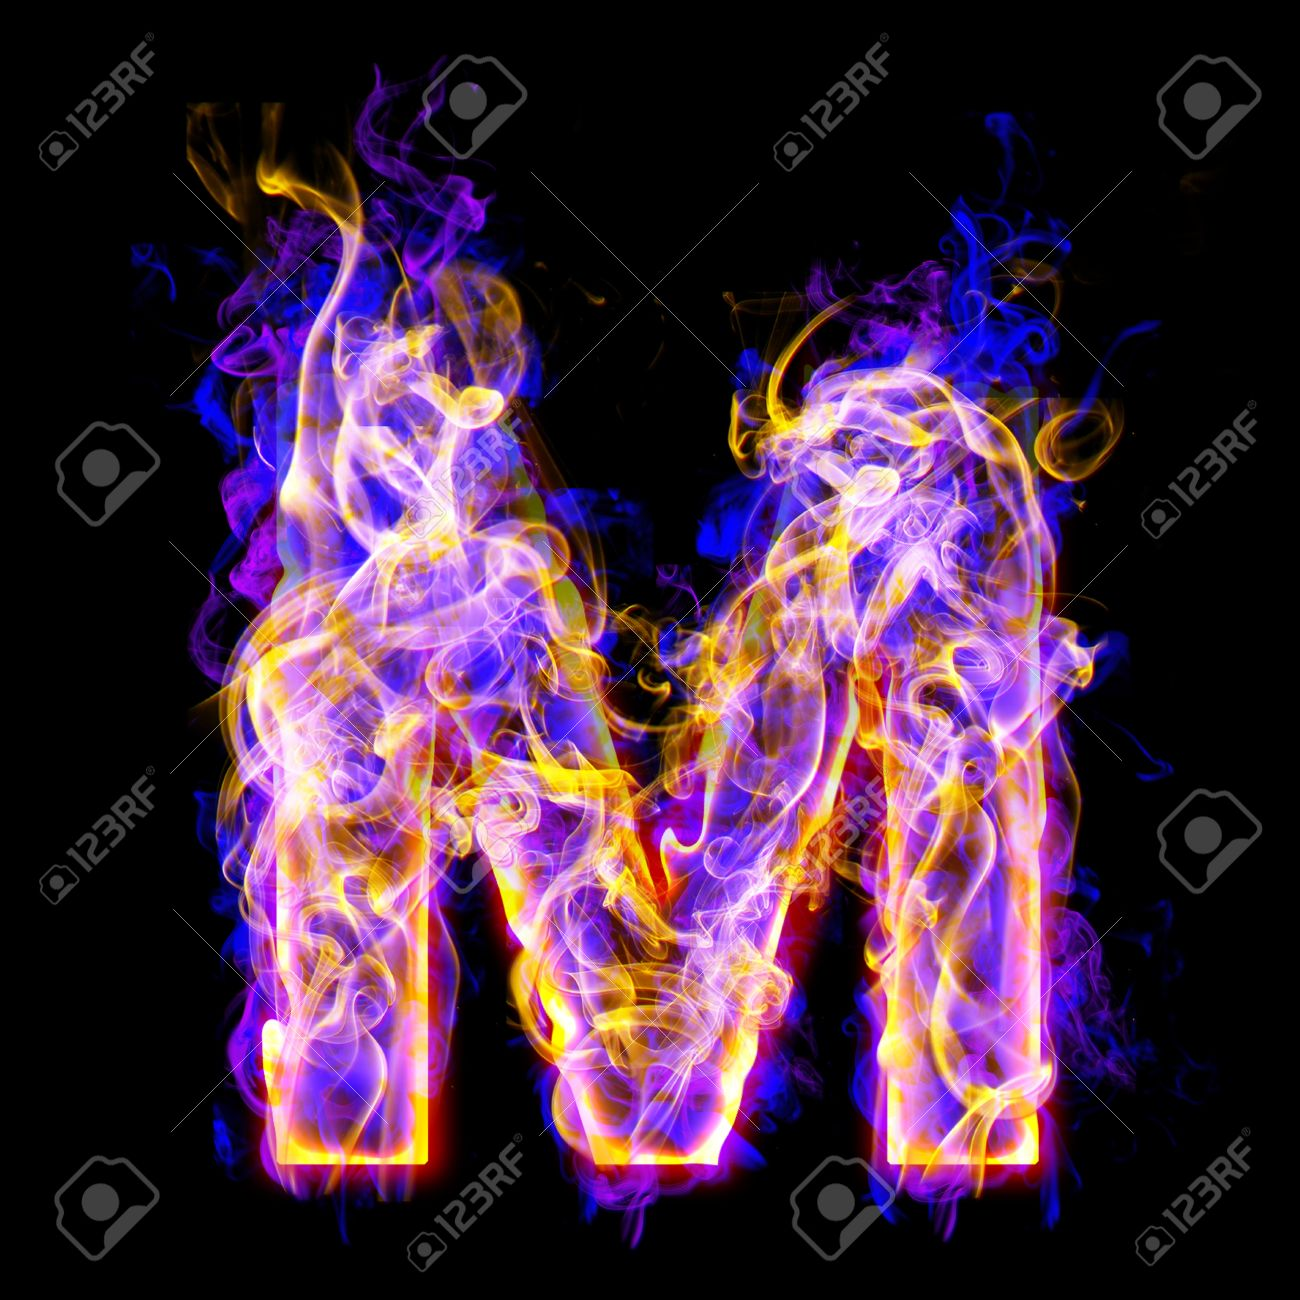 Letter M Burning With Blue And Pink Colors Stock Photo Picture And Royalty Free Image Image 9632383